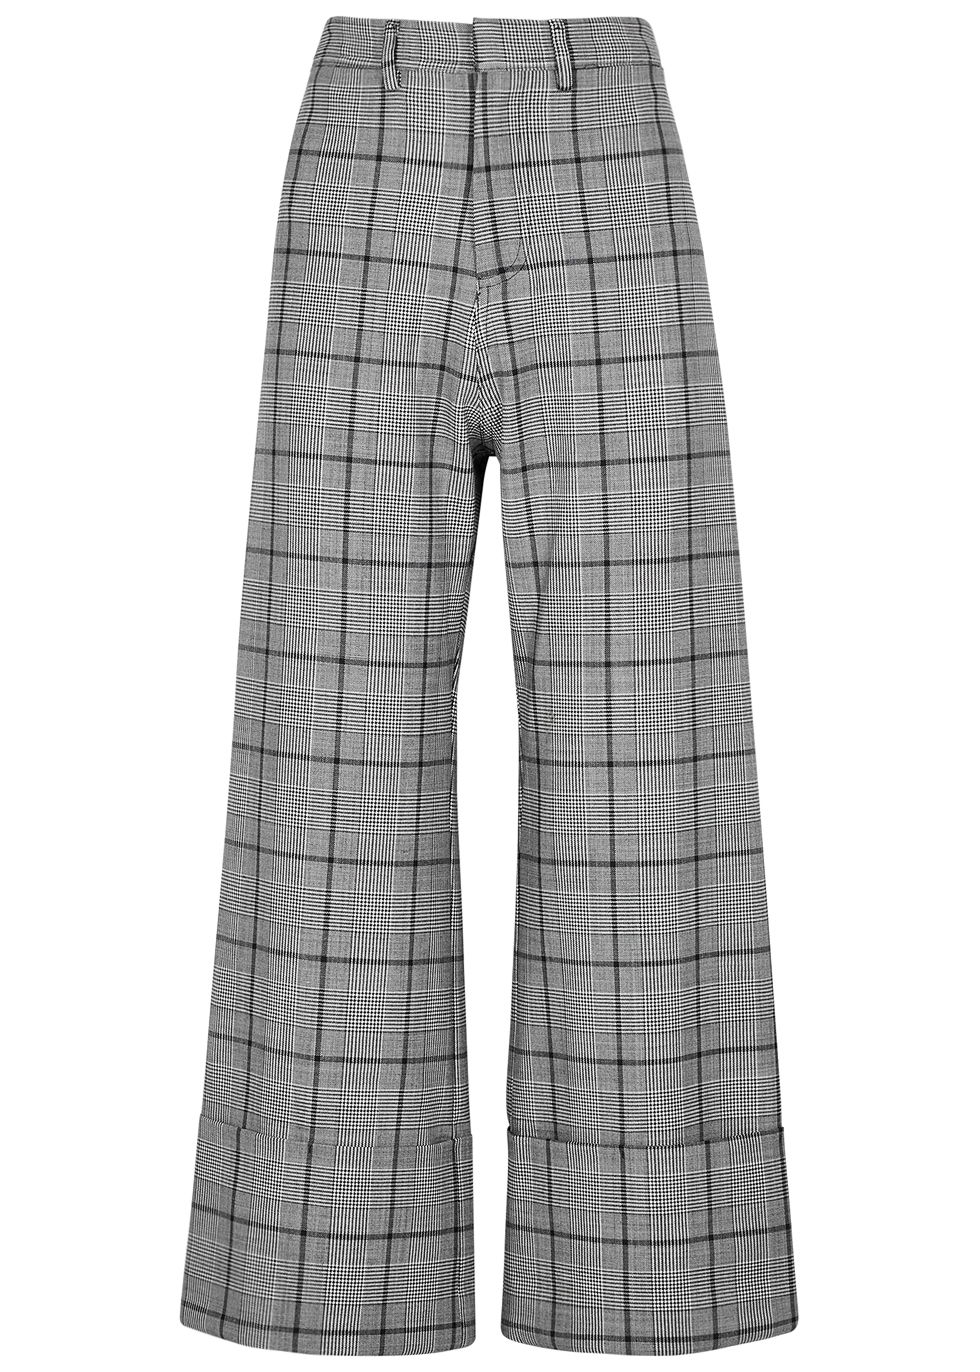 SEA NY Bacal Checked High-Waisted Trousers in Grey